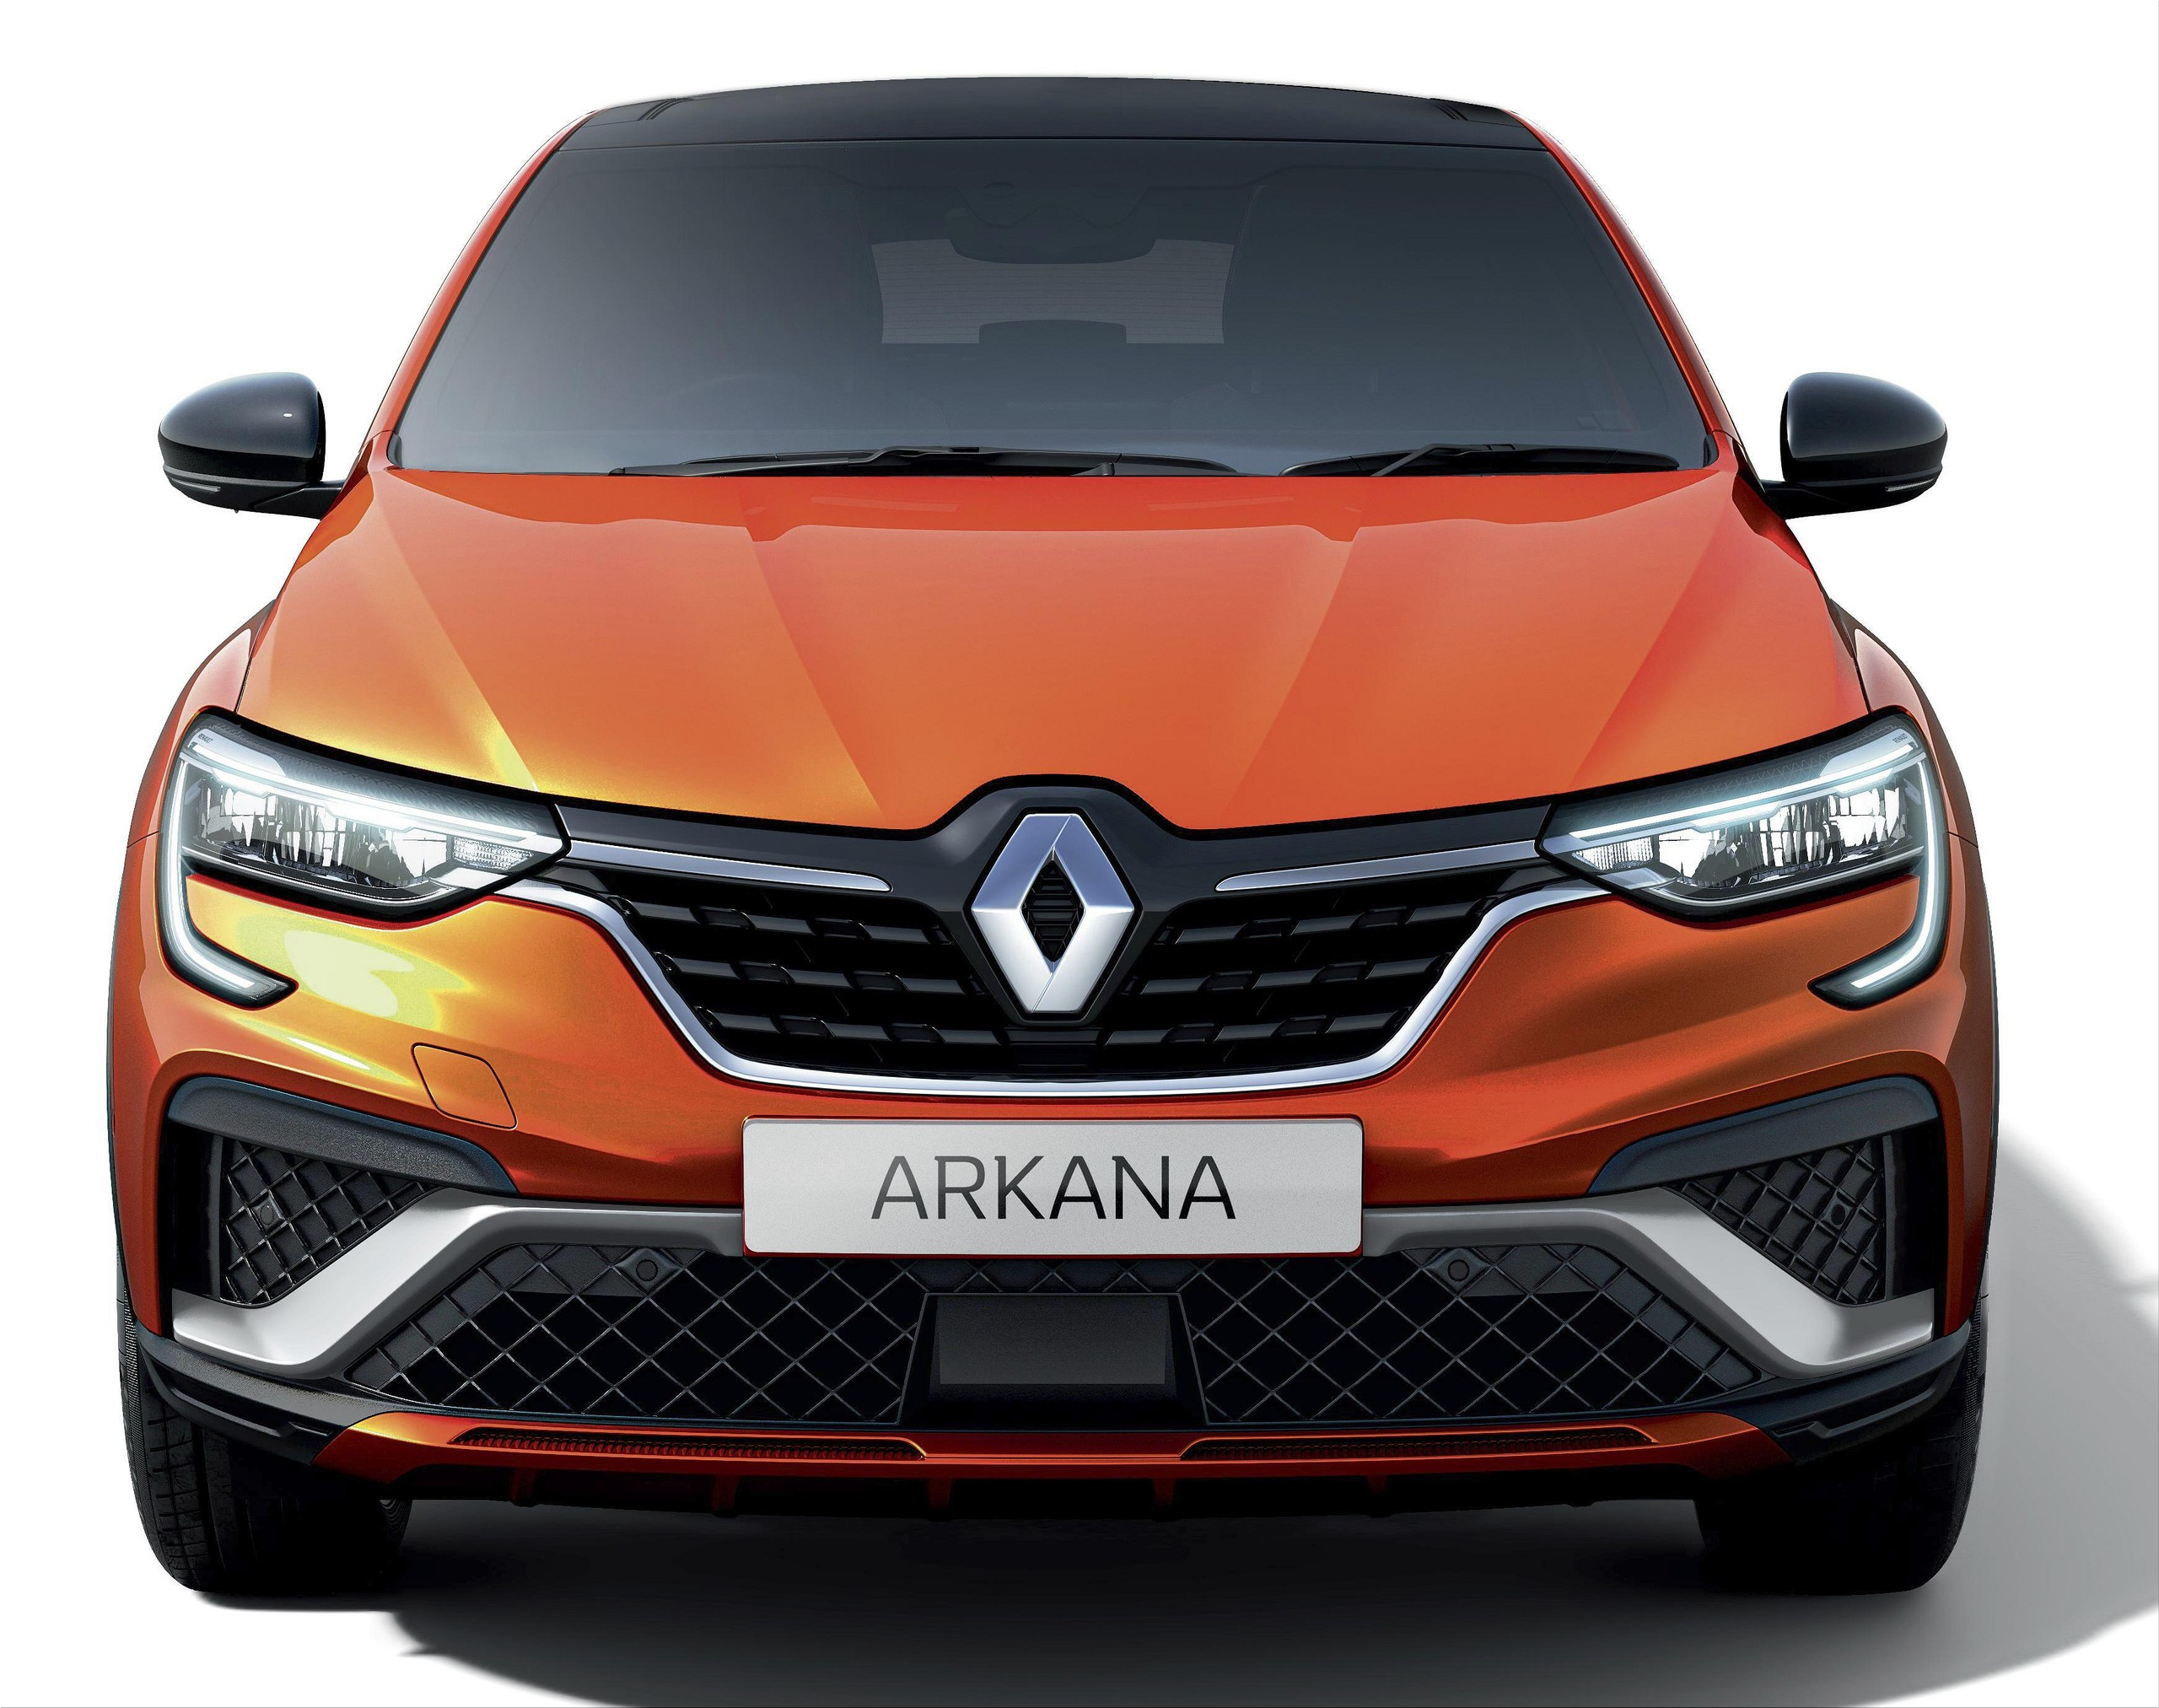 Unlike the original Arkana (based on a Dacia Duster) which has been sold for more than a y...